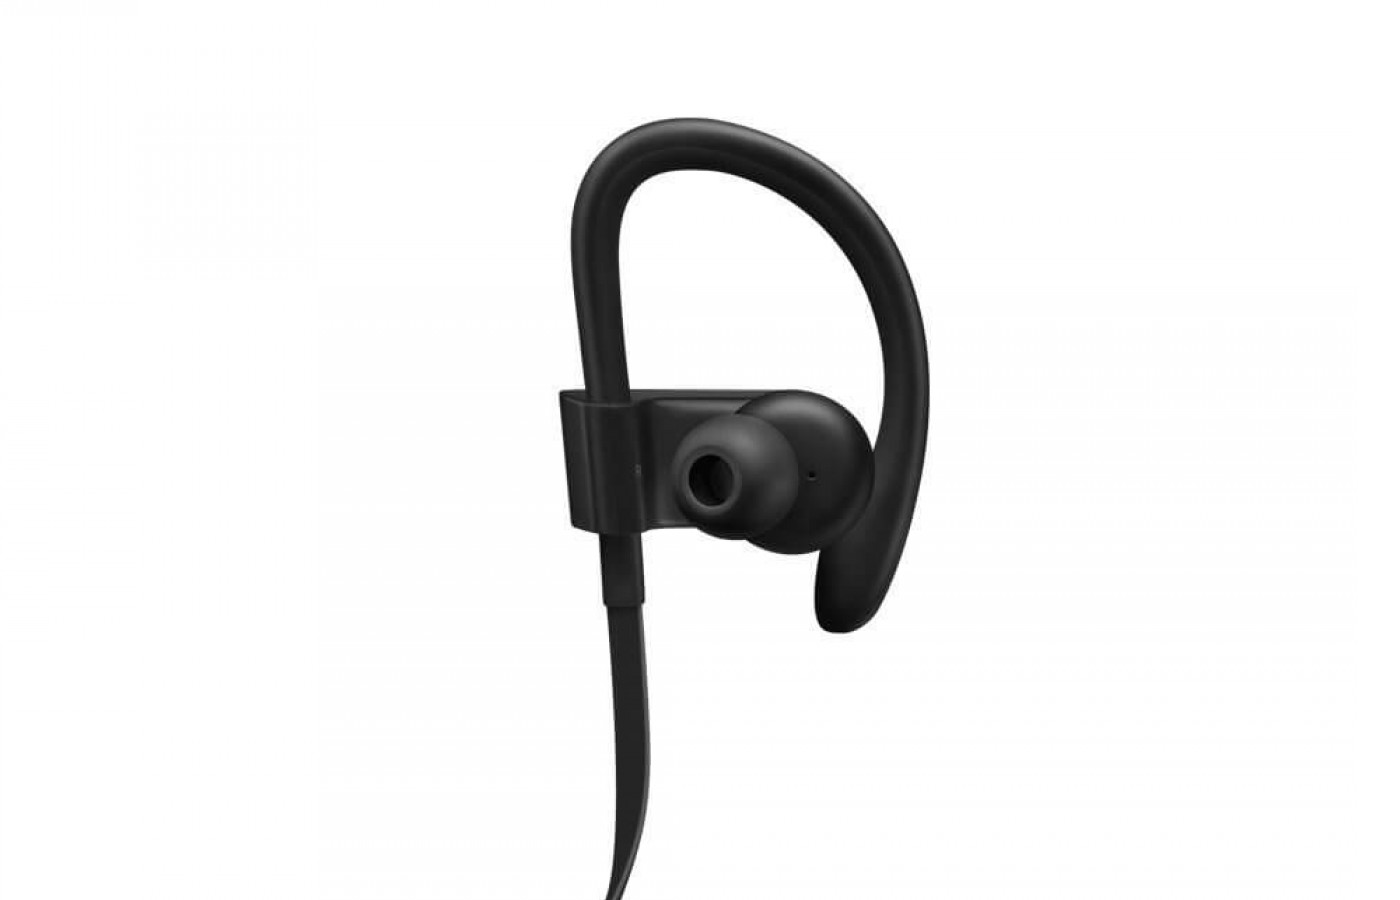 A closeup of the earbud for the Powerbeats 3.